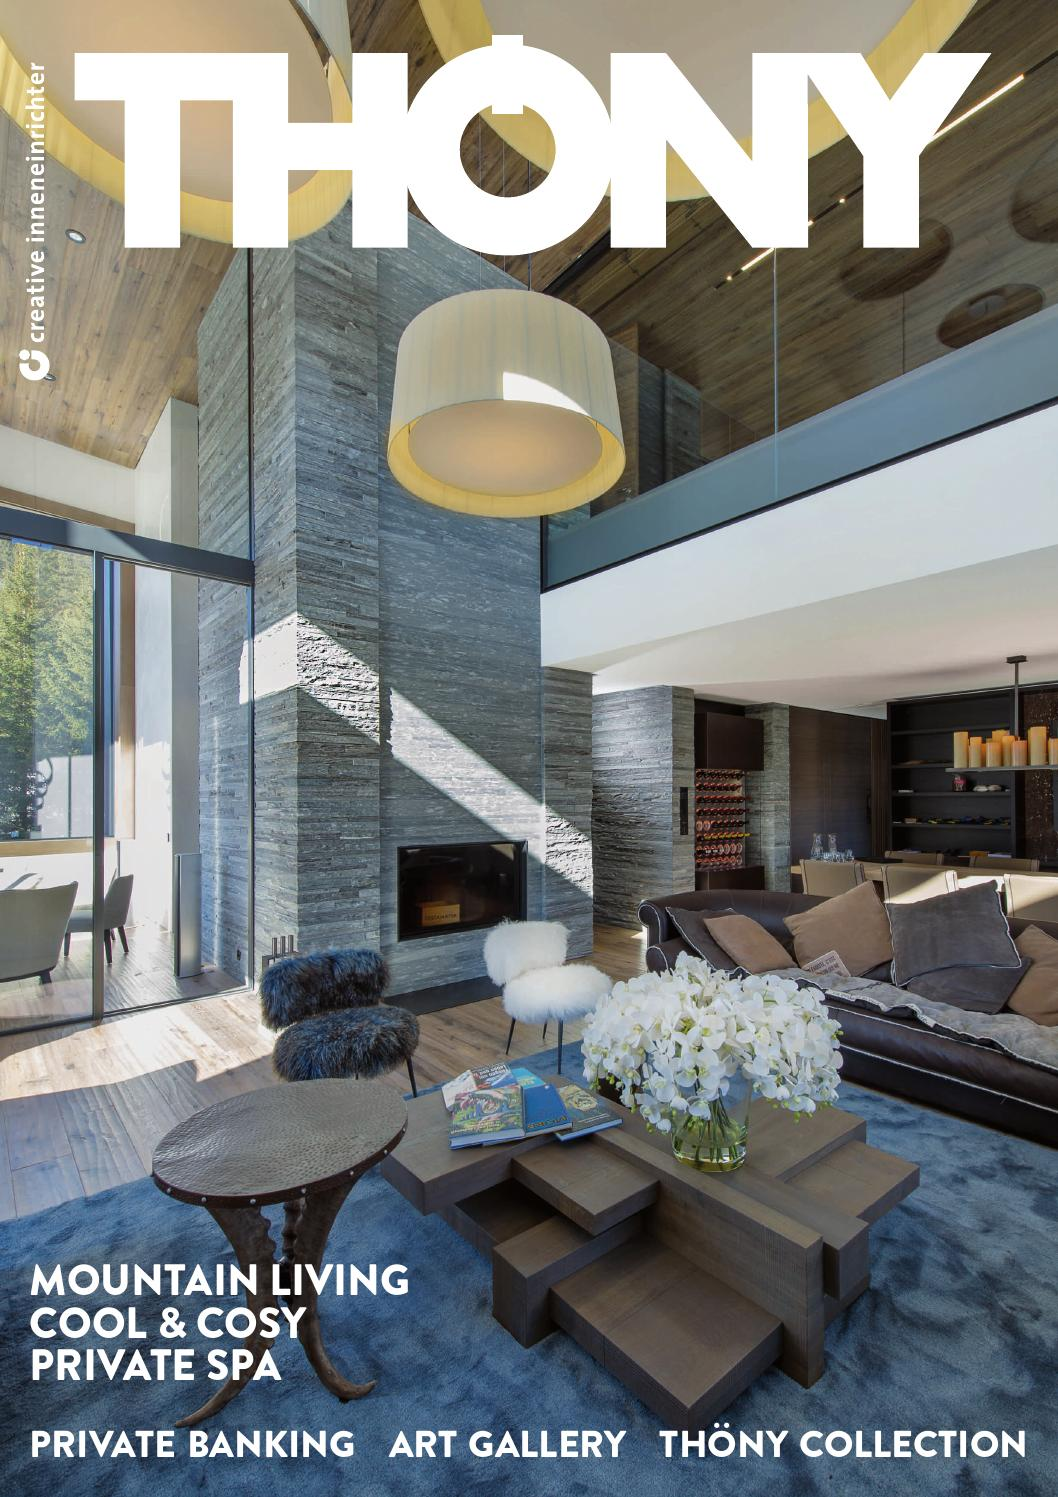 THÖNY COLLECTION 2015 - 2016 by Sitewalk - issuu